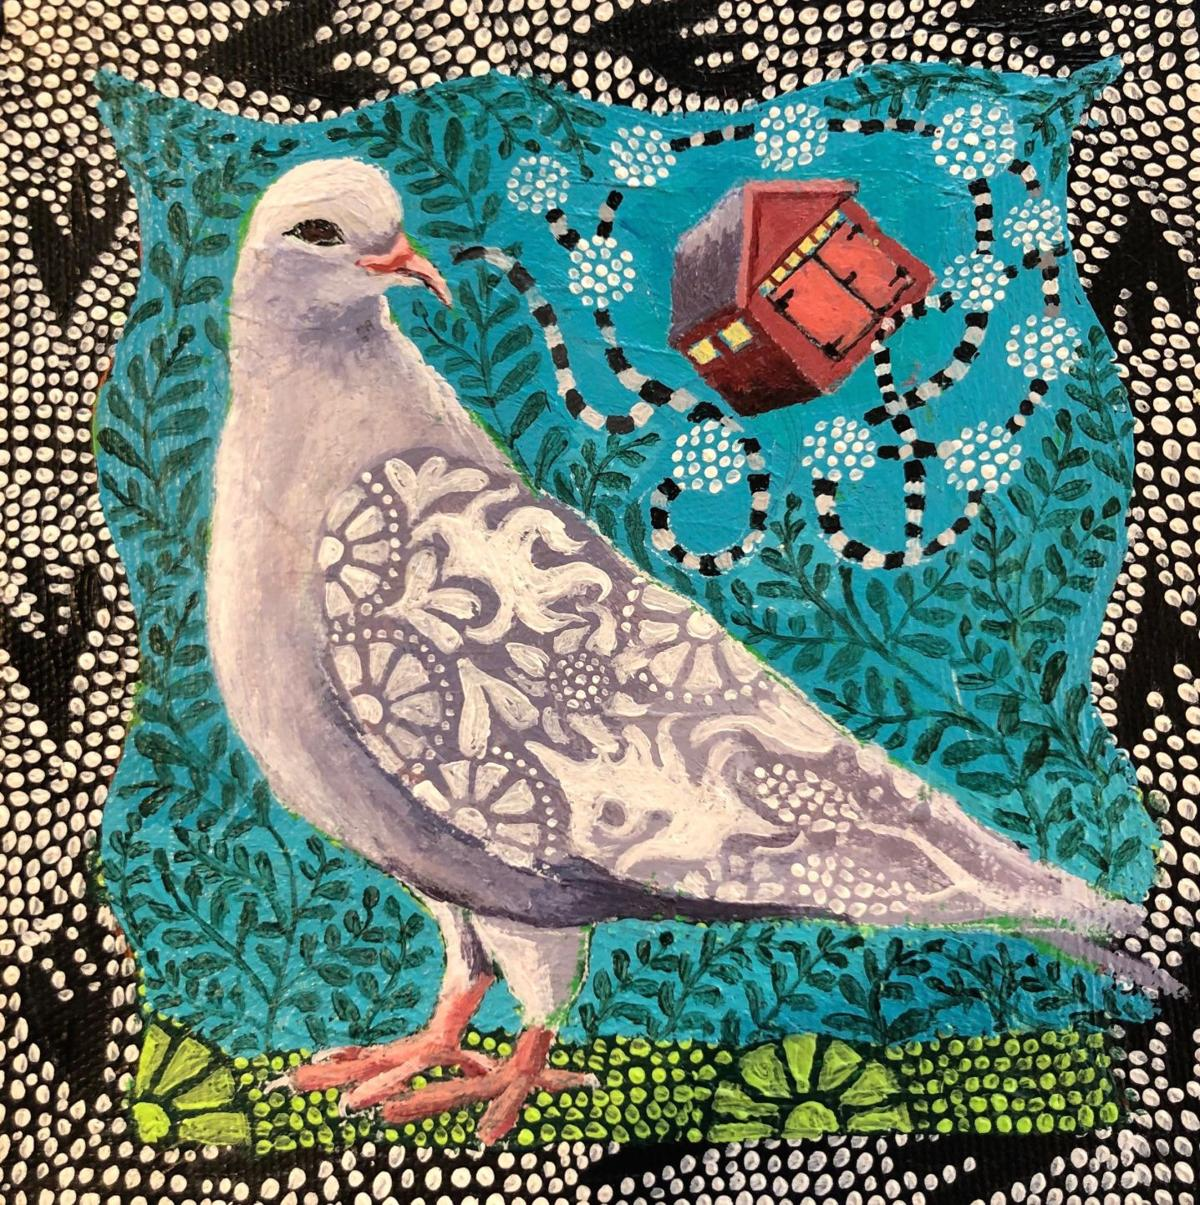 At David M. Hunt Library in Falls Village, Danielle Mailer exhibits colorful, intricate works